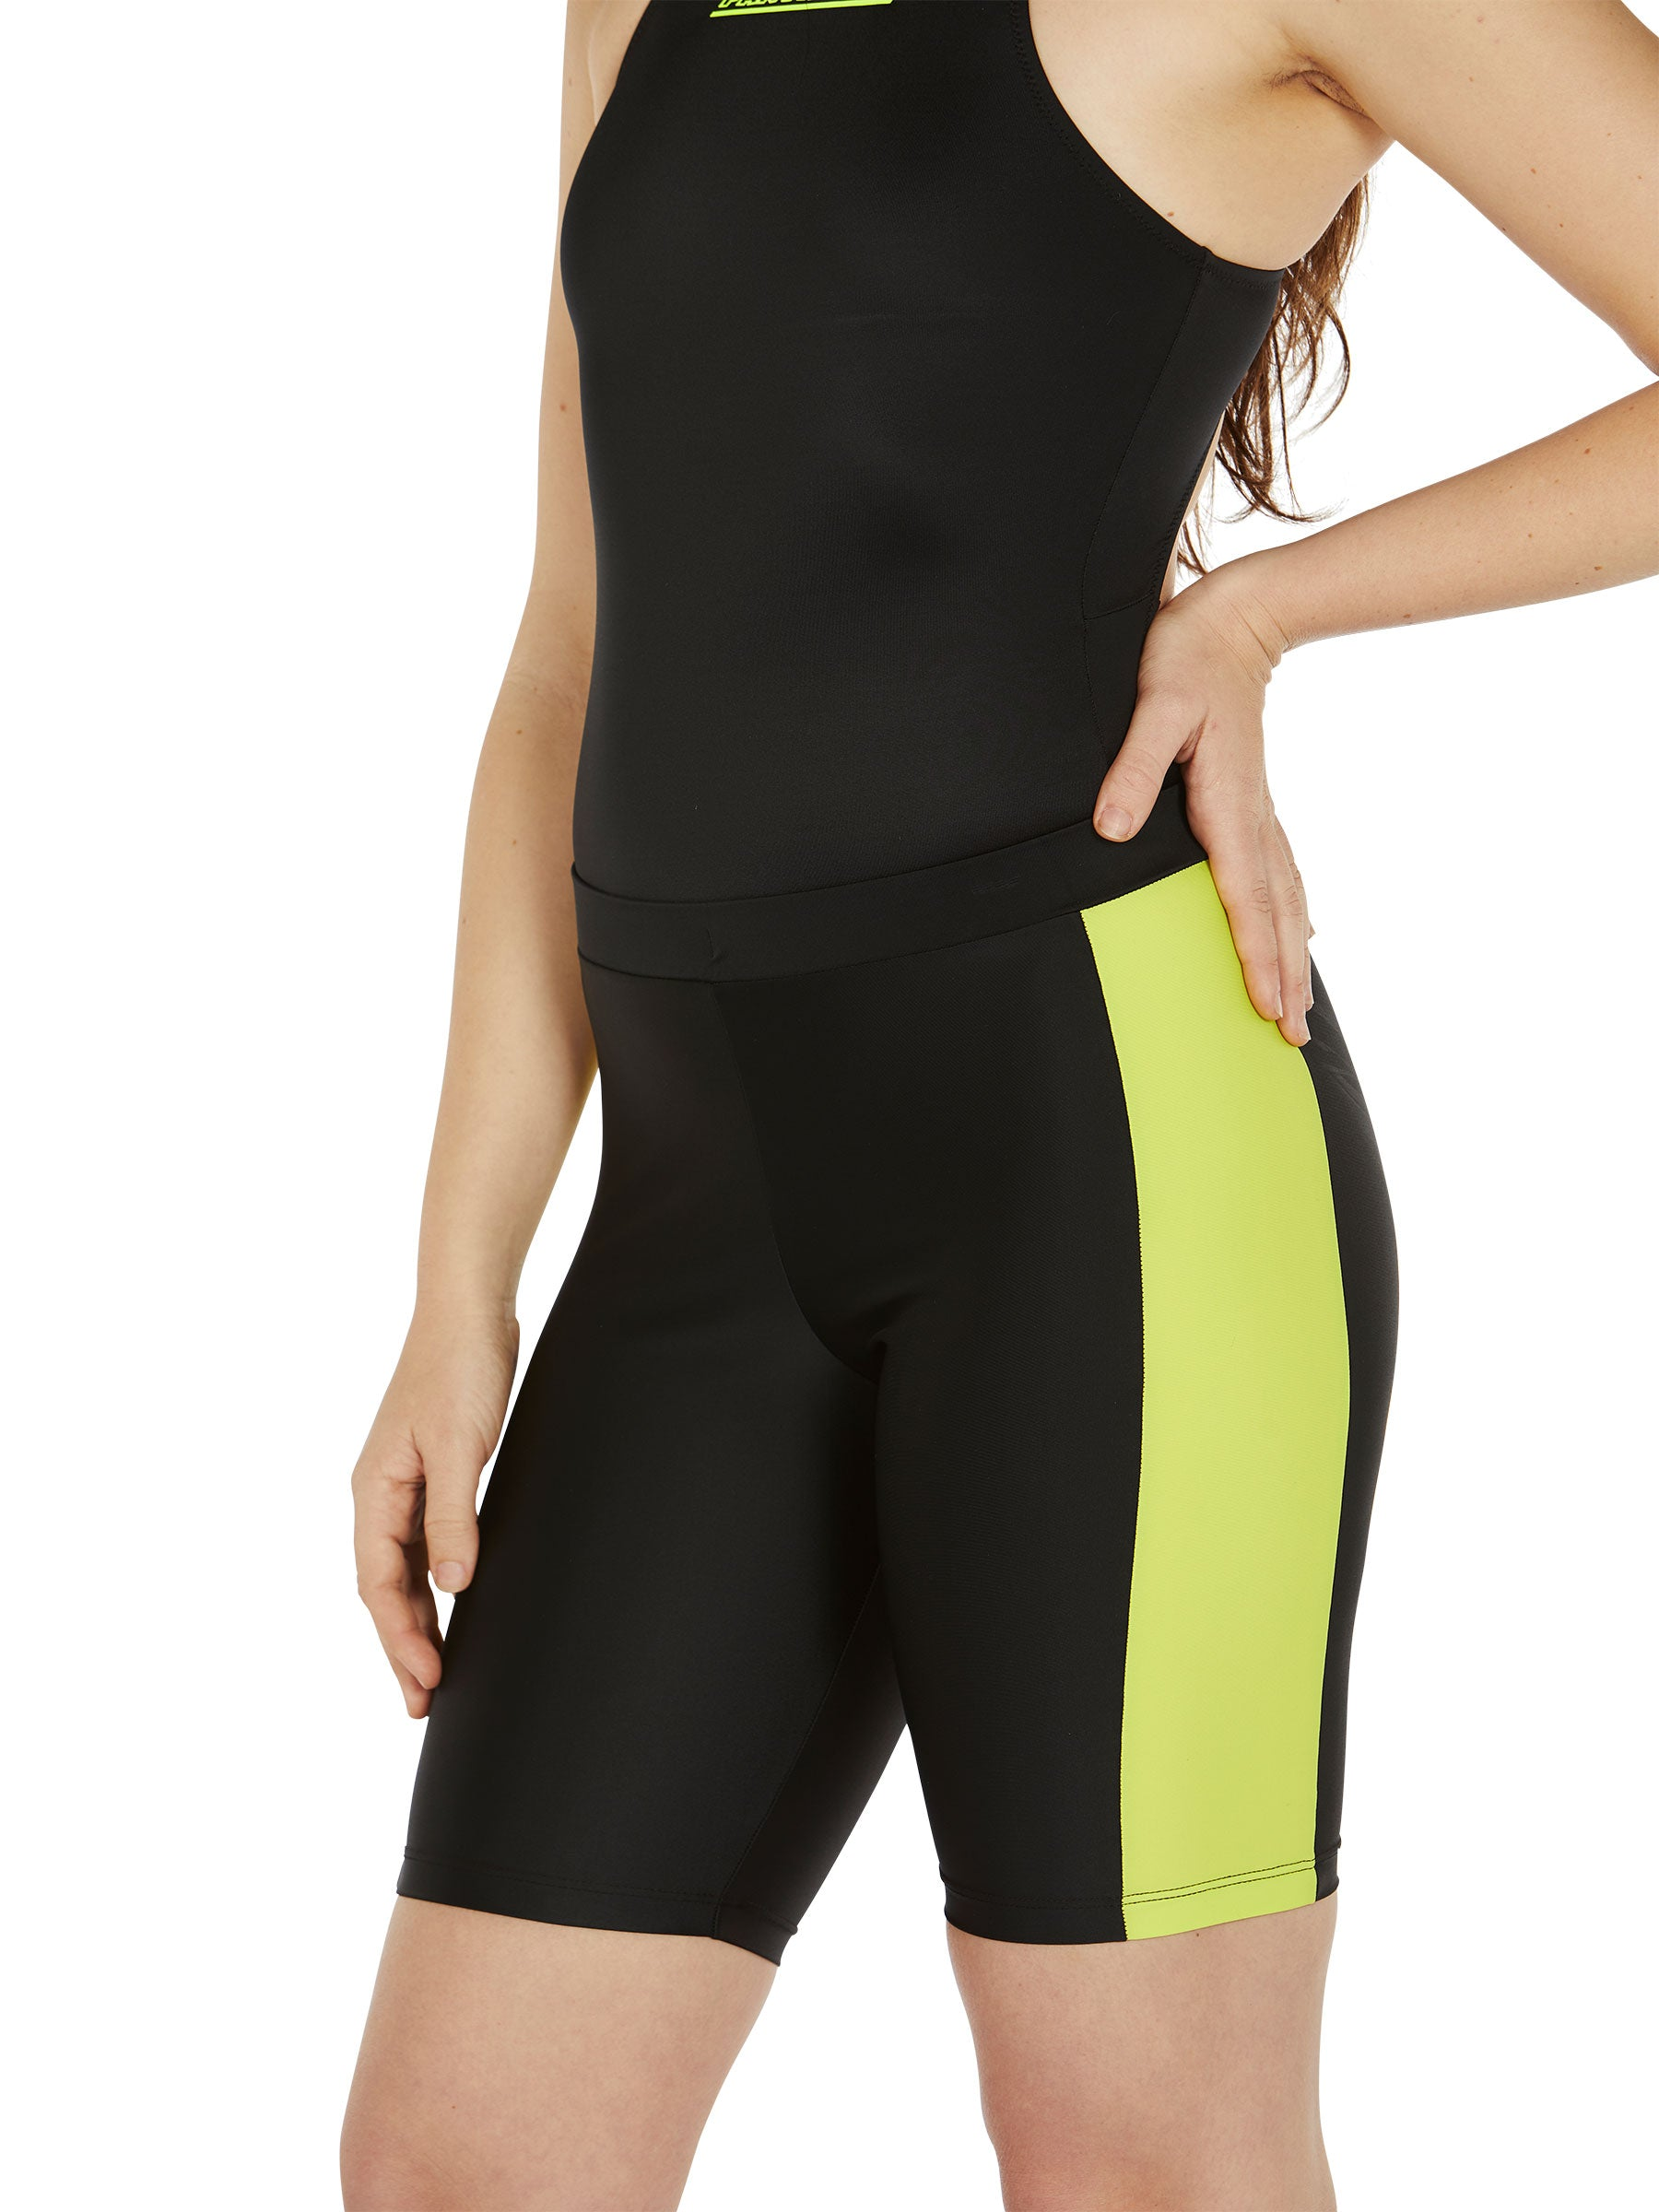 odd92 Fantabody Cycling Shorts Spring/Summer 2019 Womenswear - 5